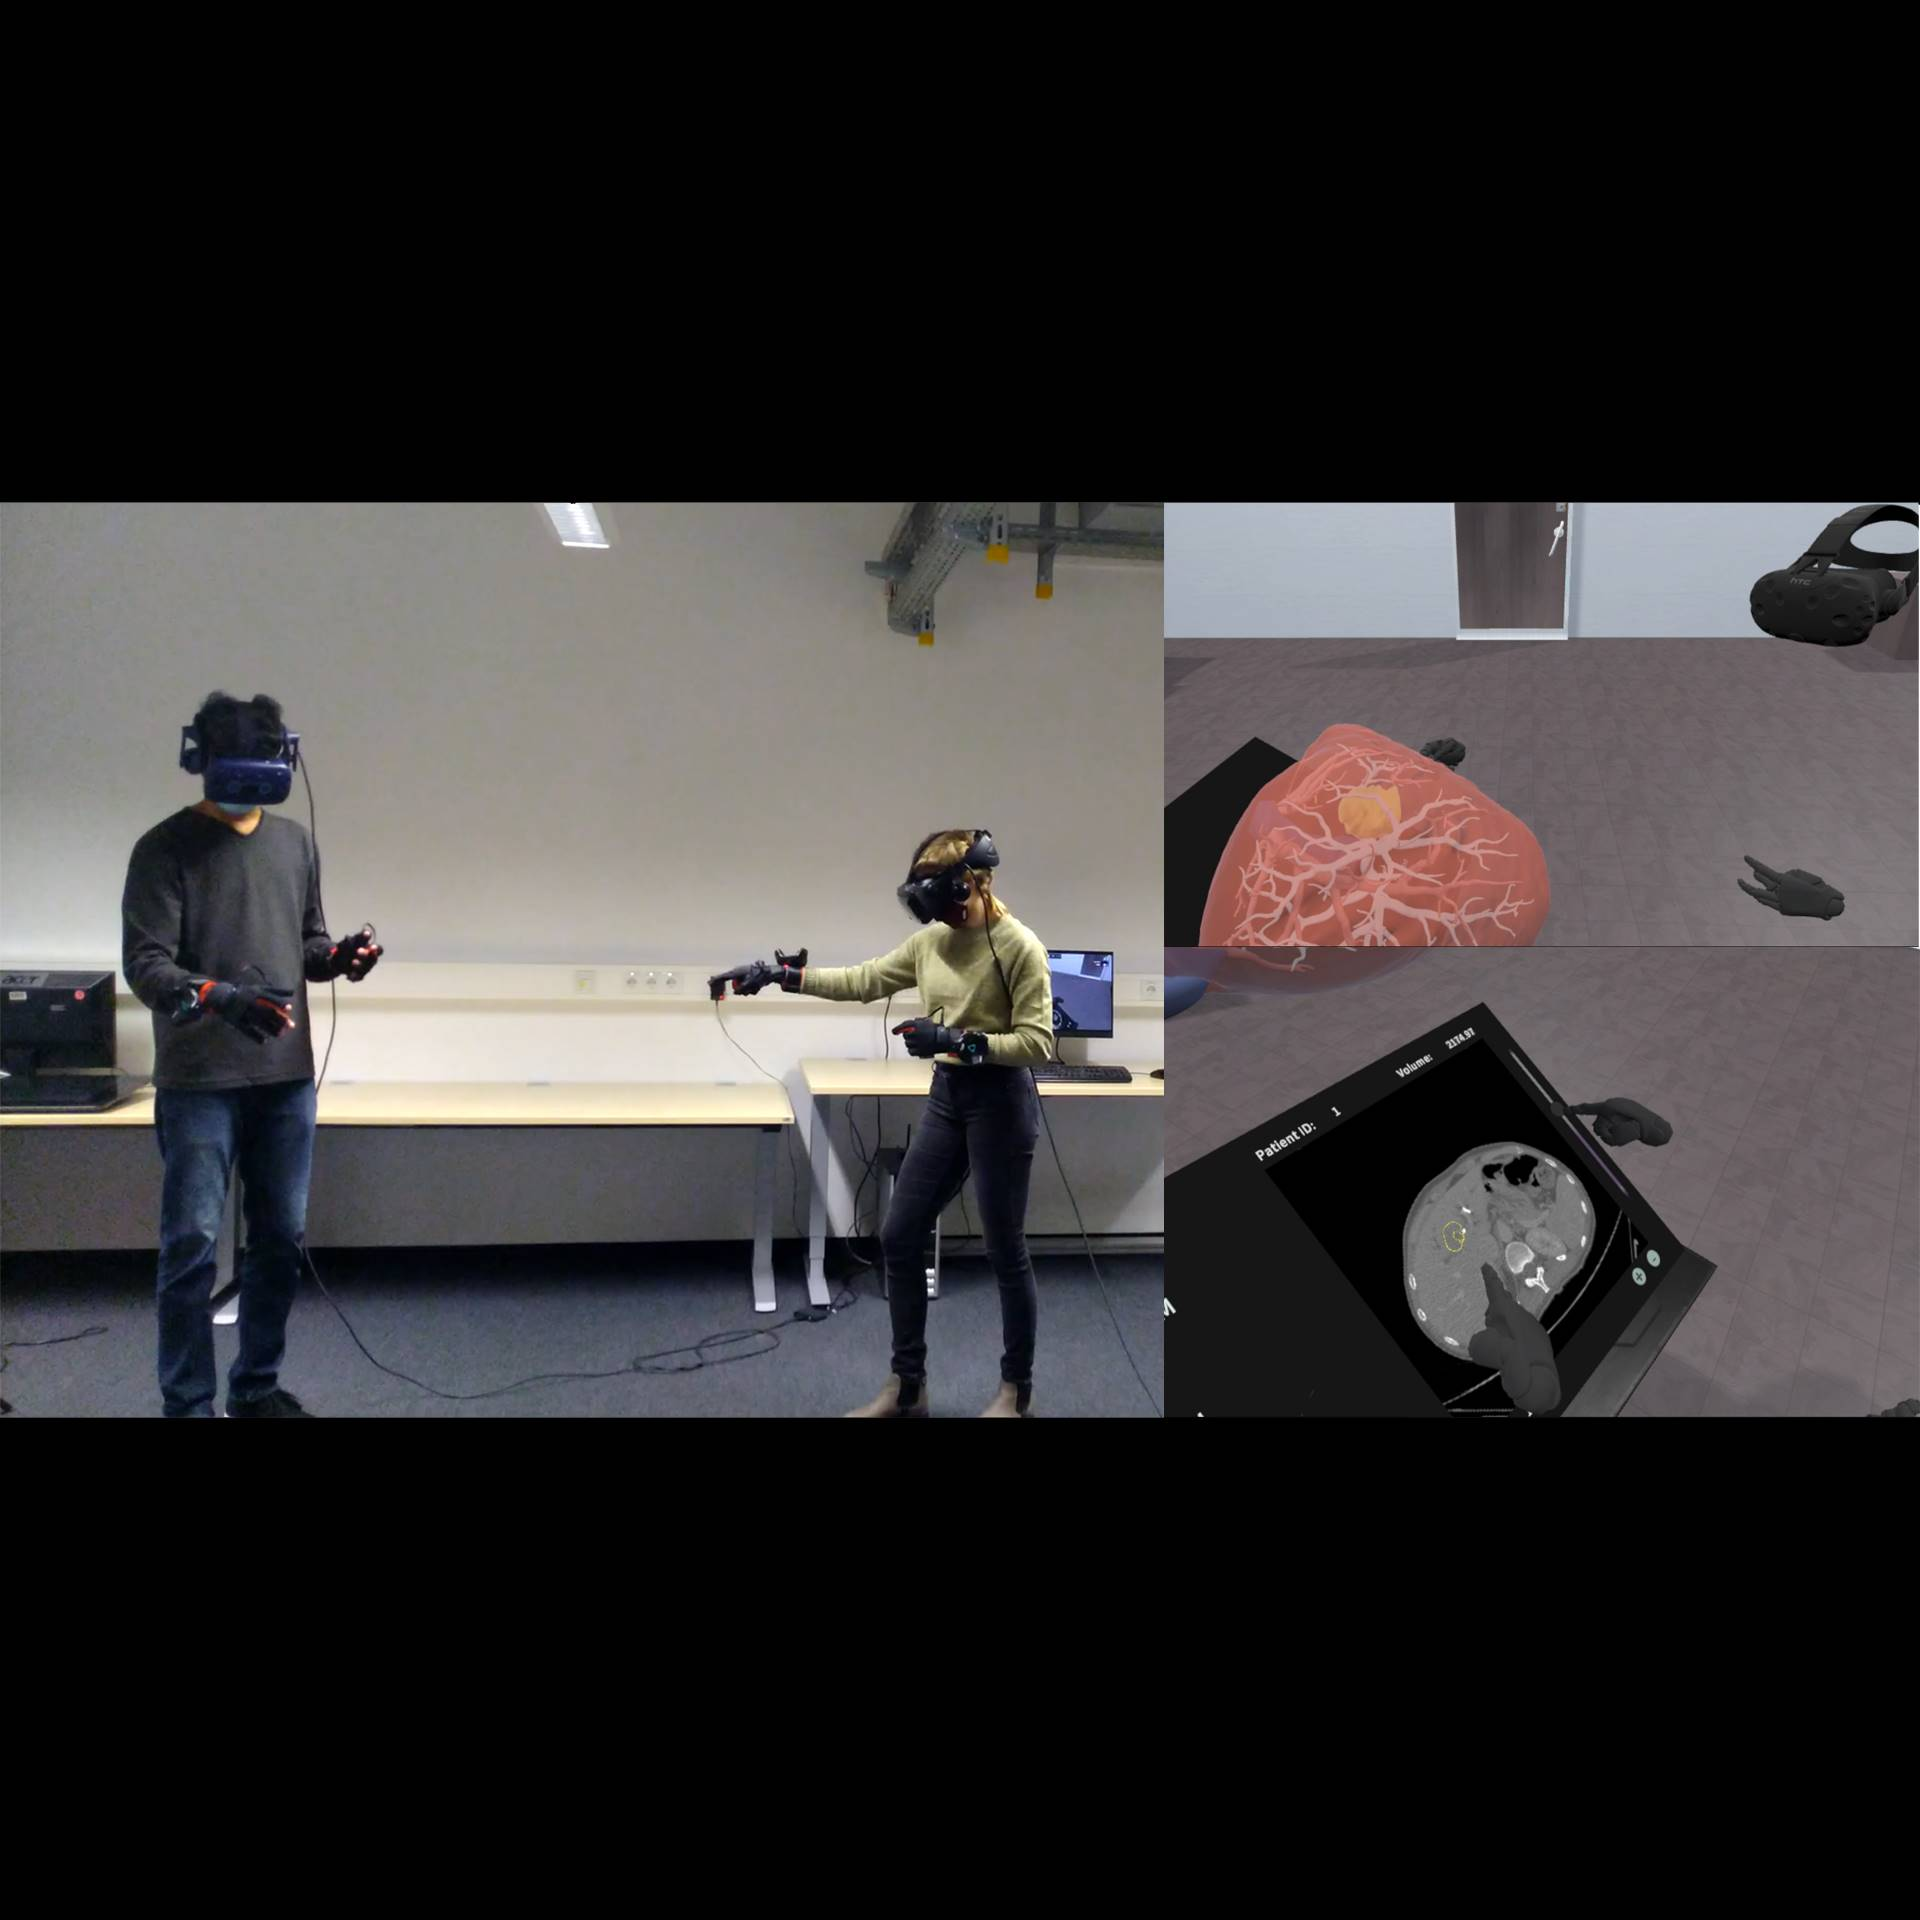 Collaborative VR for Liver Surgery Planning using Wearable Data Gloves: An Interactive Demonstration